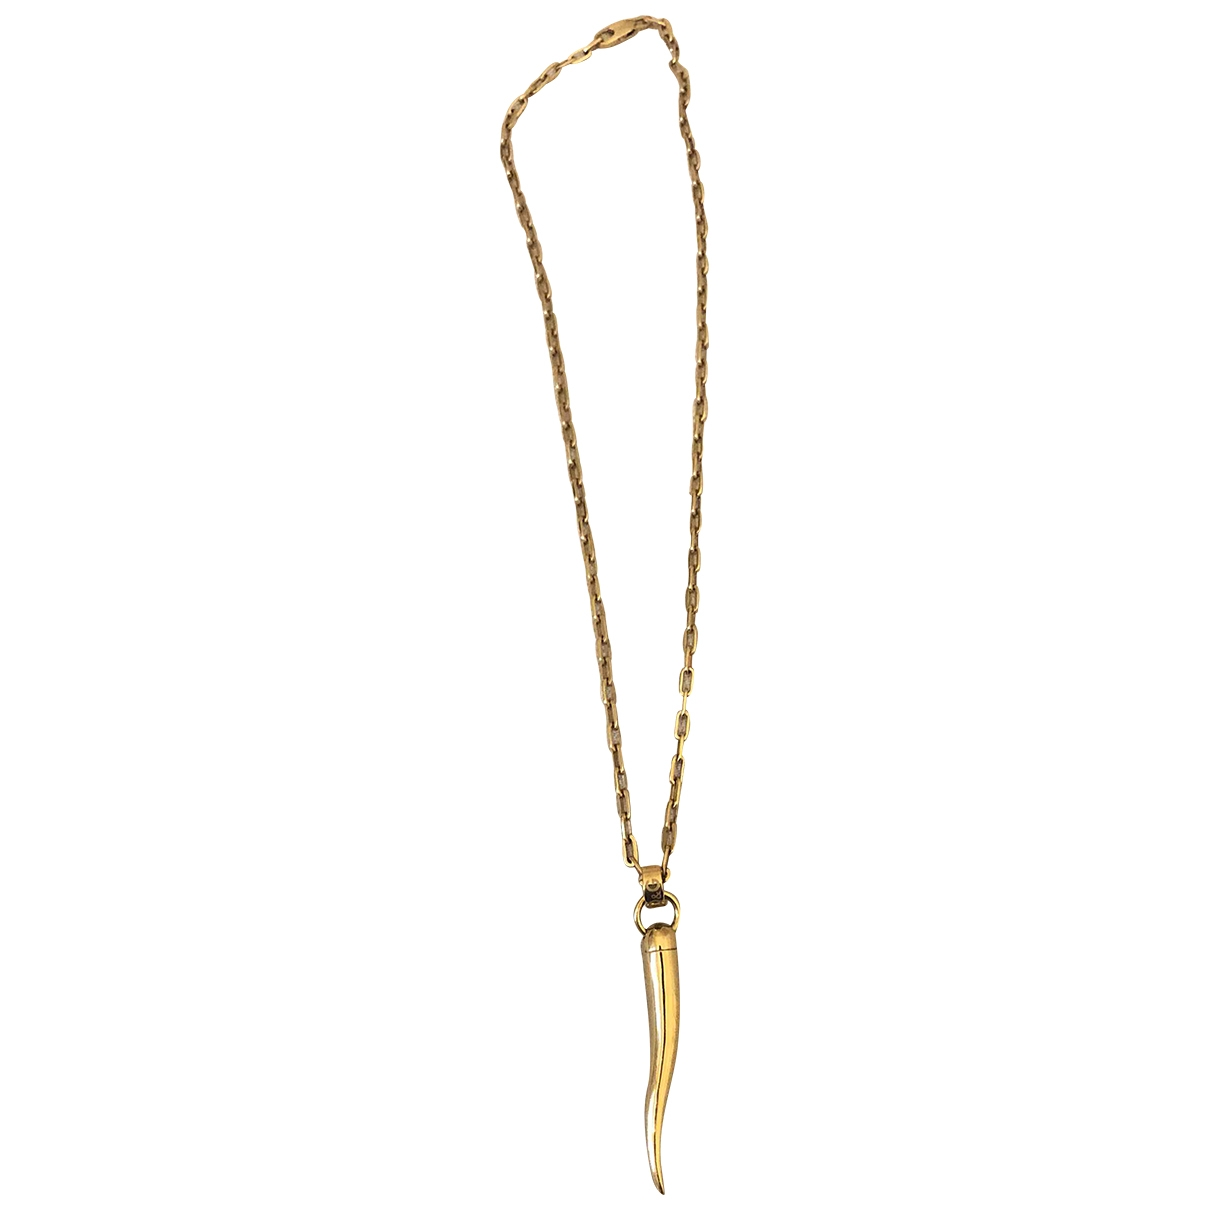 D&g \N Gold Metal necklace for Women \N